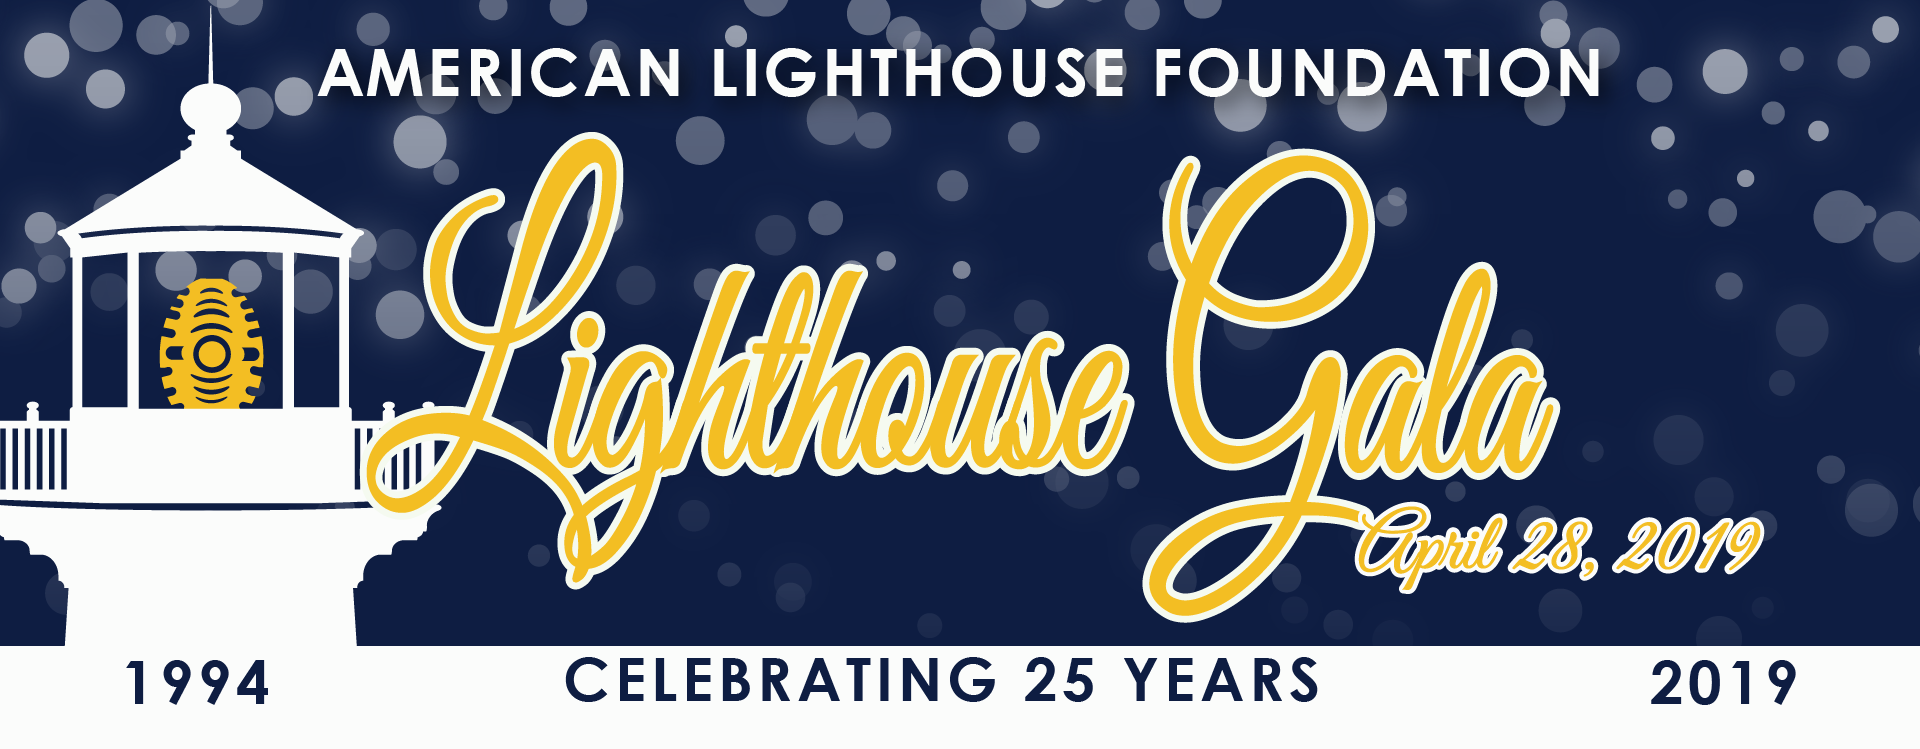 2019 Lighthouse Gala